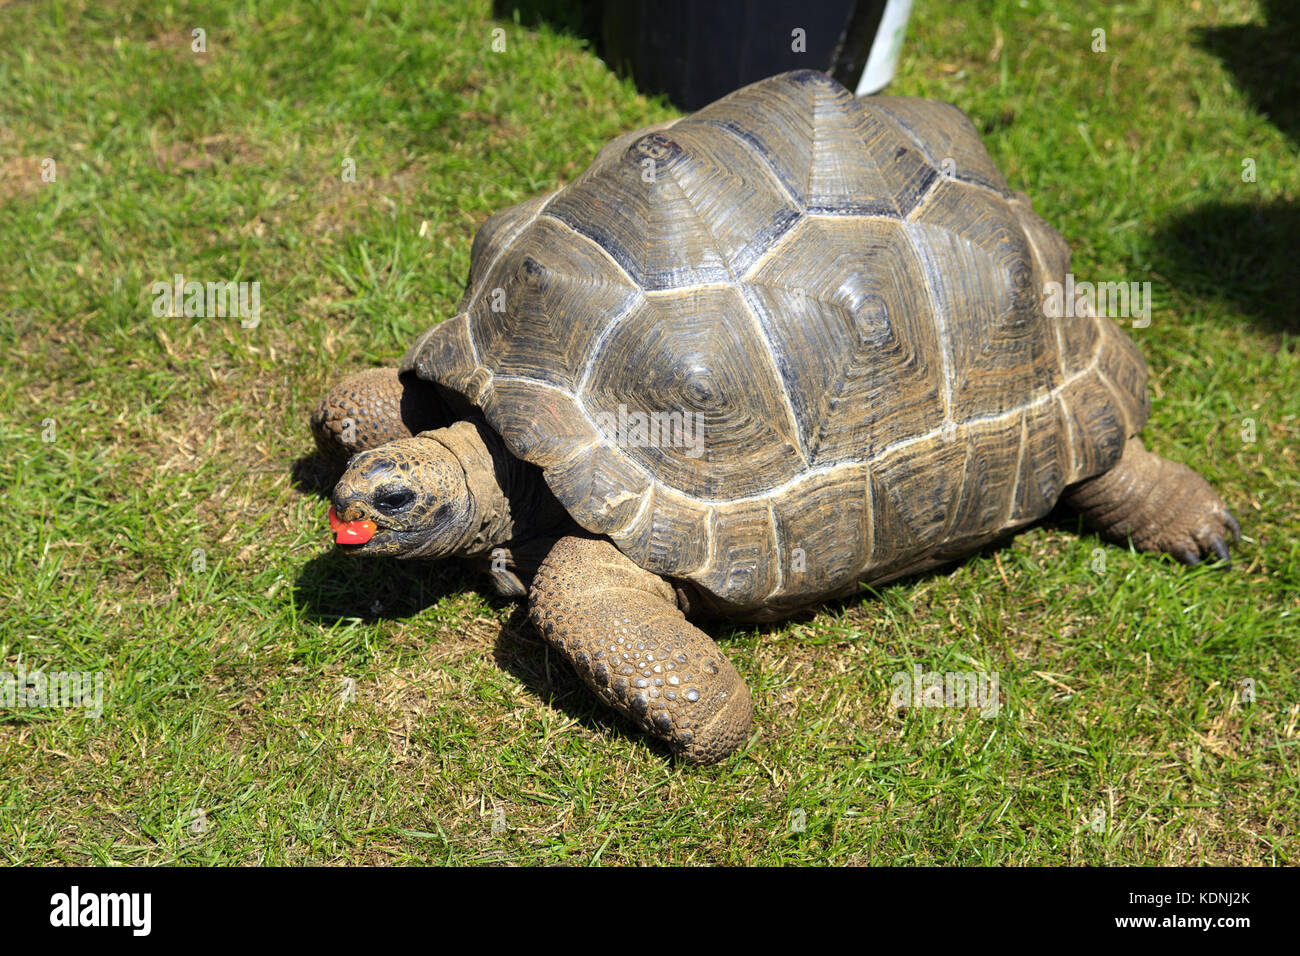 Young Aldabra Giant Tortoise eating a tomato - Stock Image